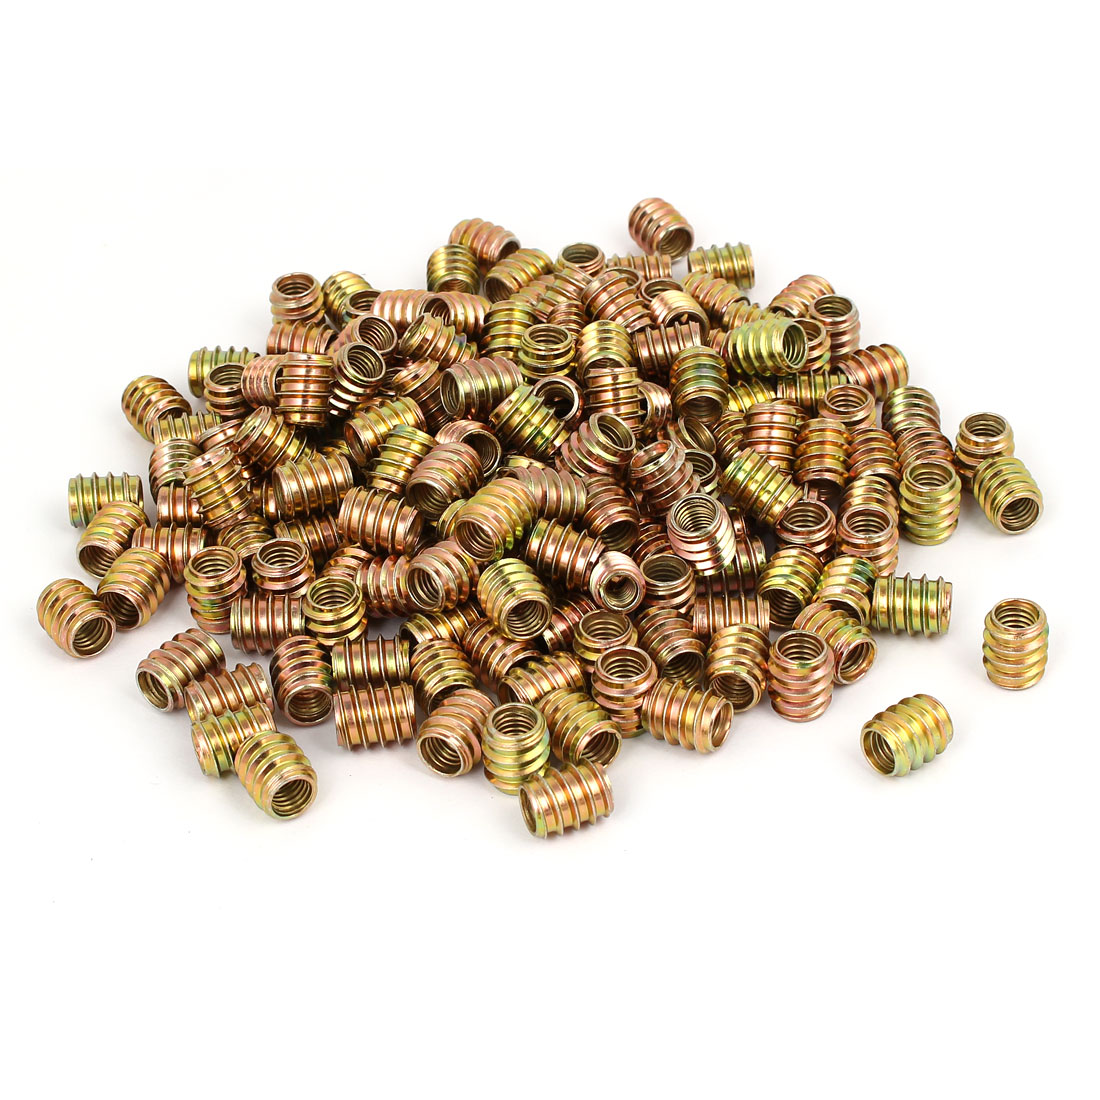 Wood Furniture Insert Screw E-Nut Bronze Tone M8 x 15mm 250pcs